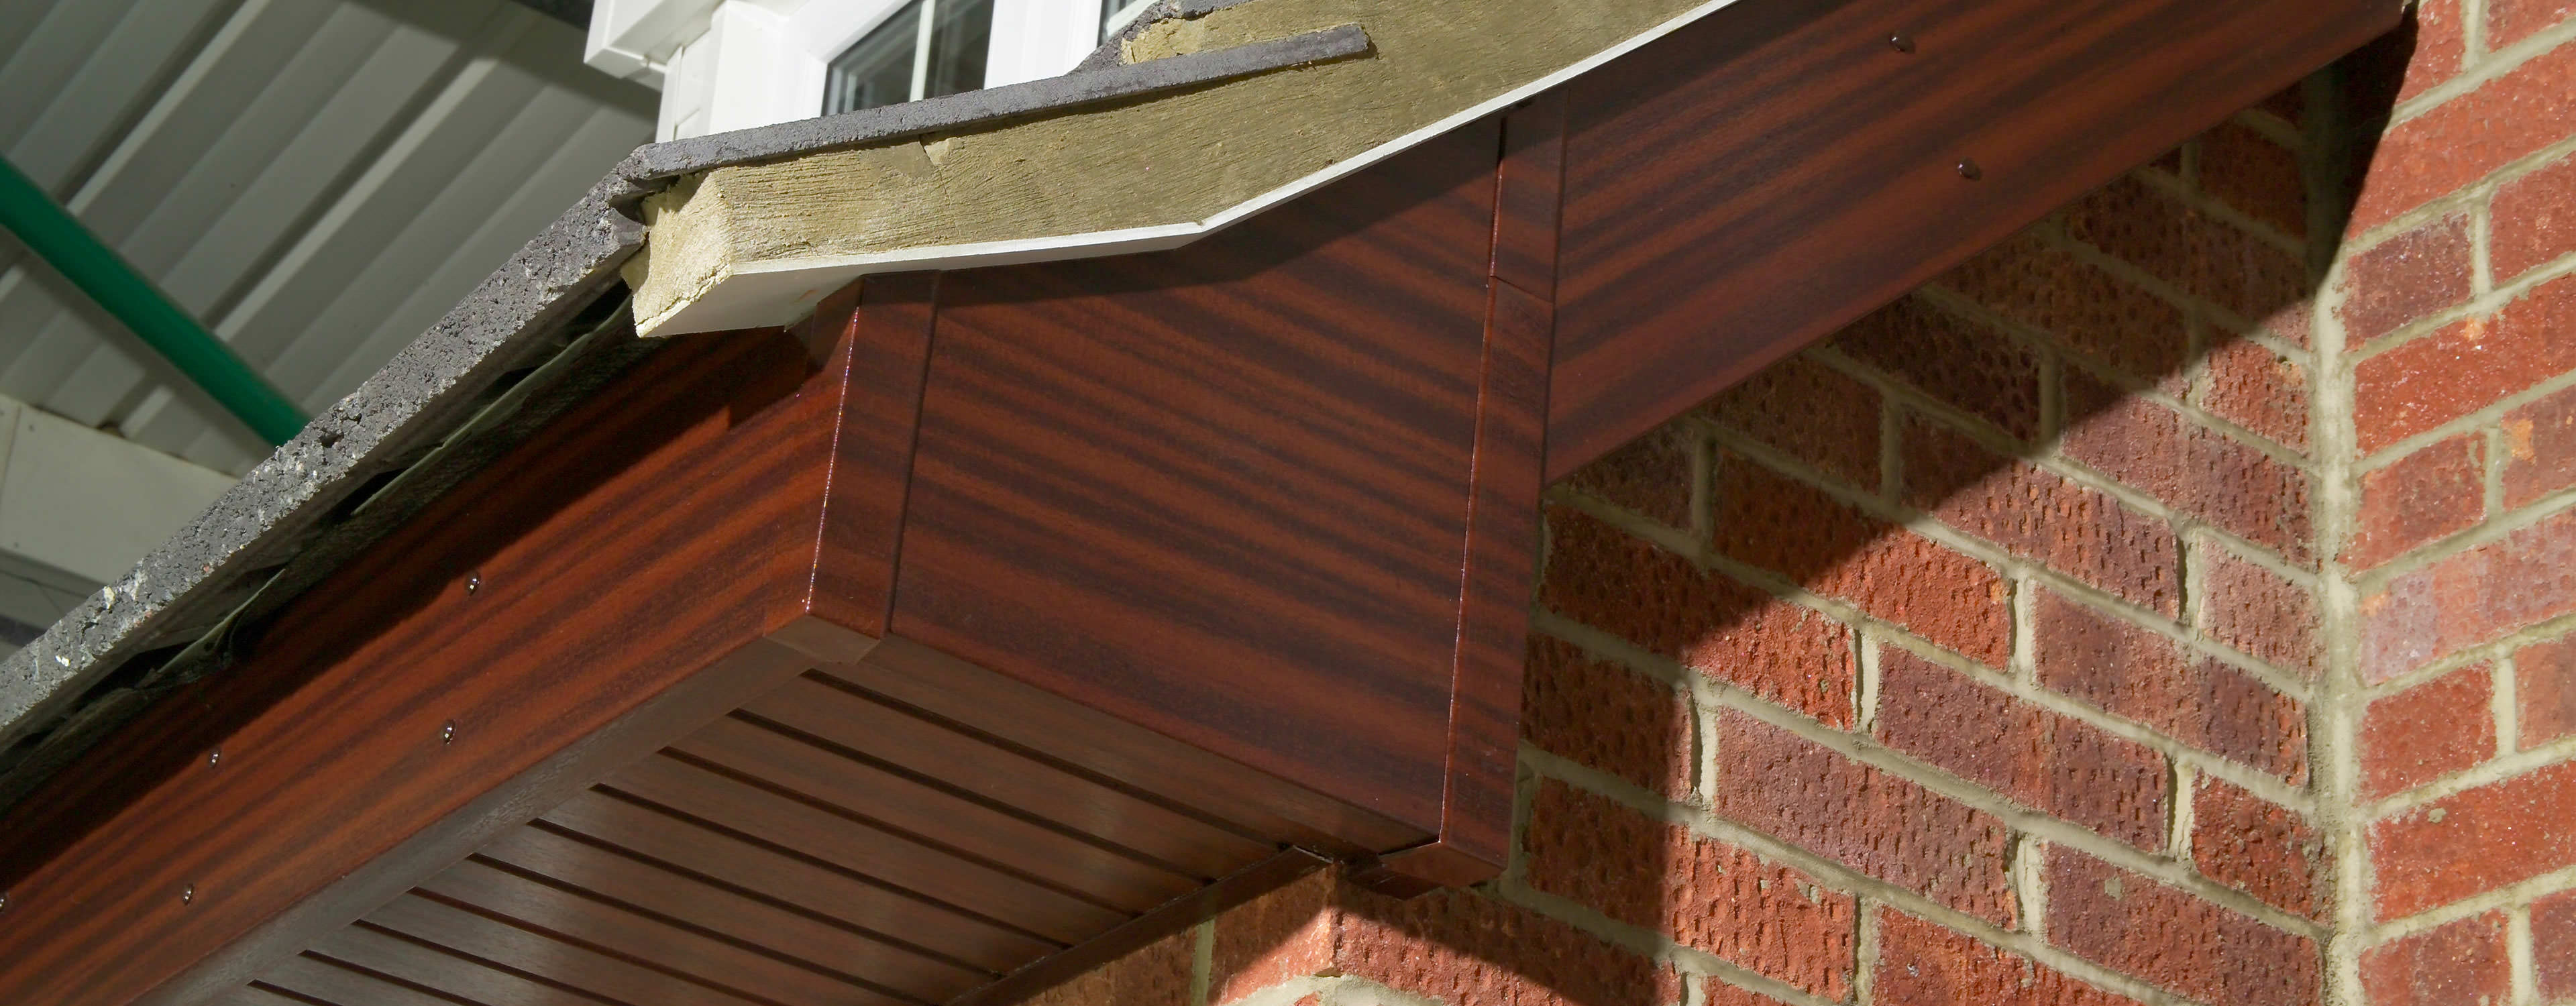 Soffits and Cladding in Lincoln